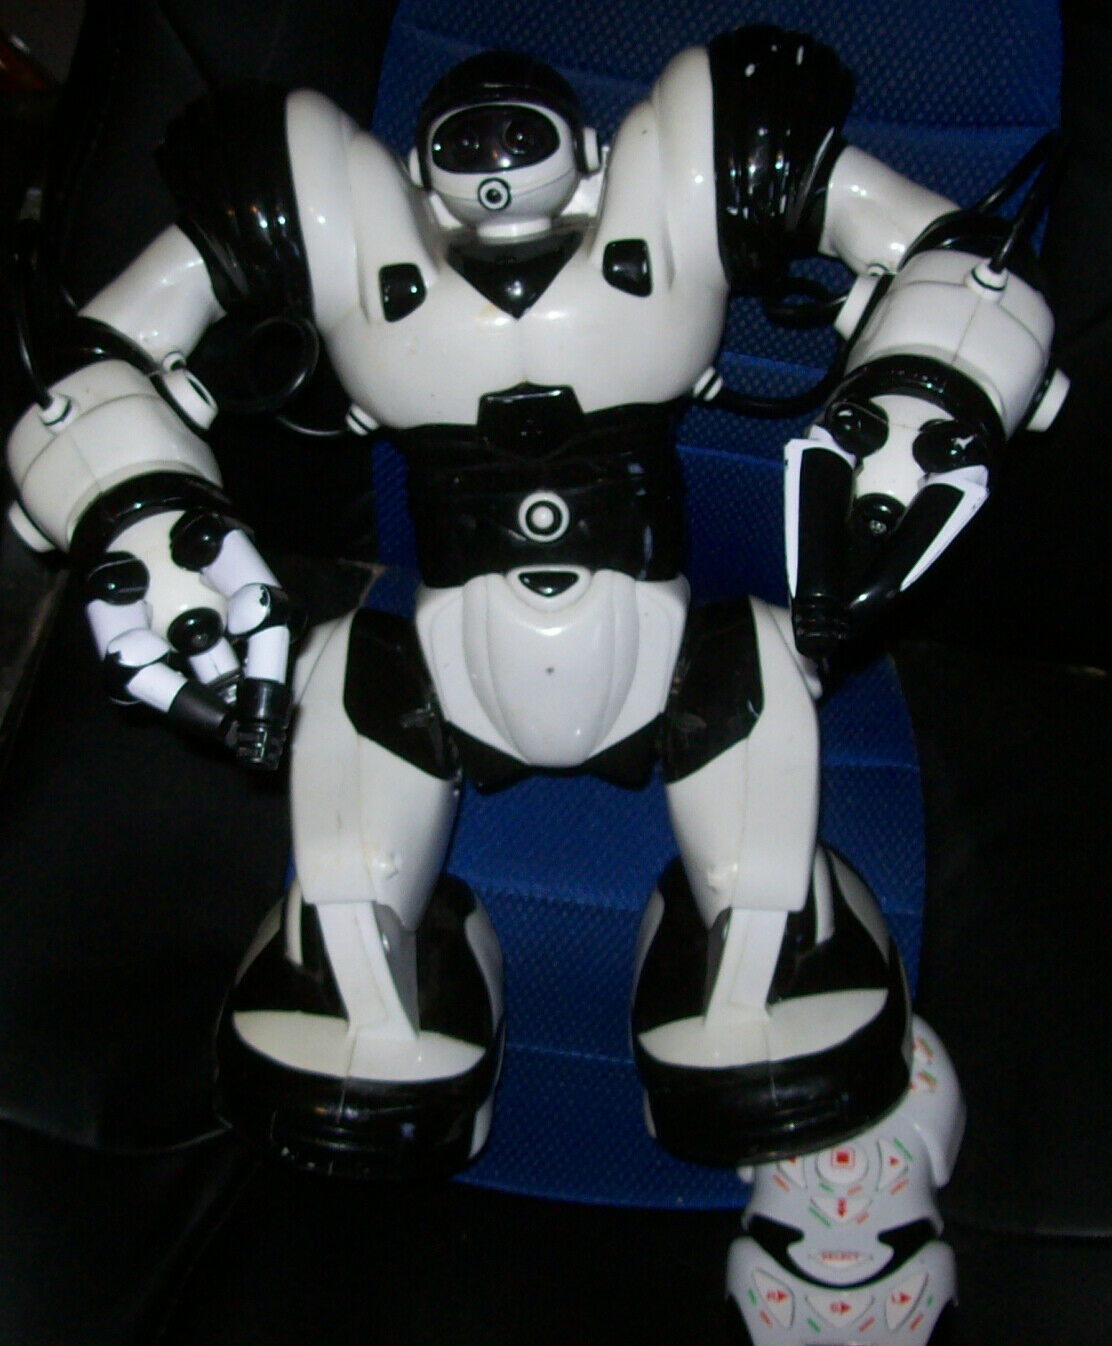 """Wowwee Robosapien Large 14"""" White  Humanoid Robot Complete With Remote Control"""